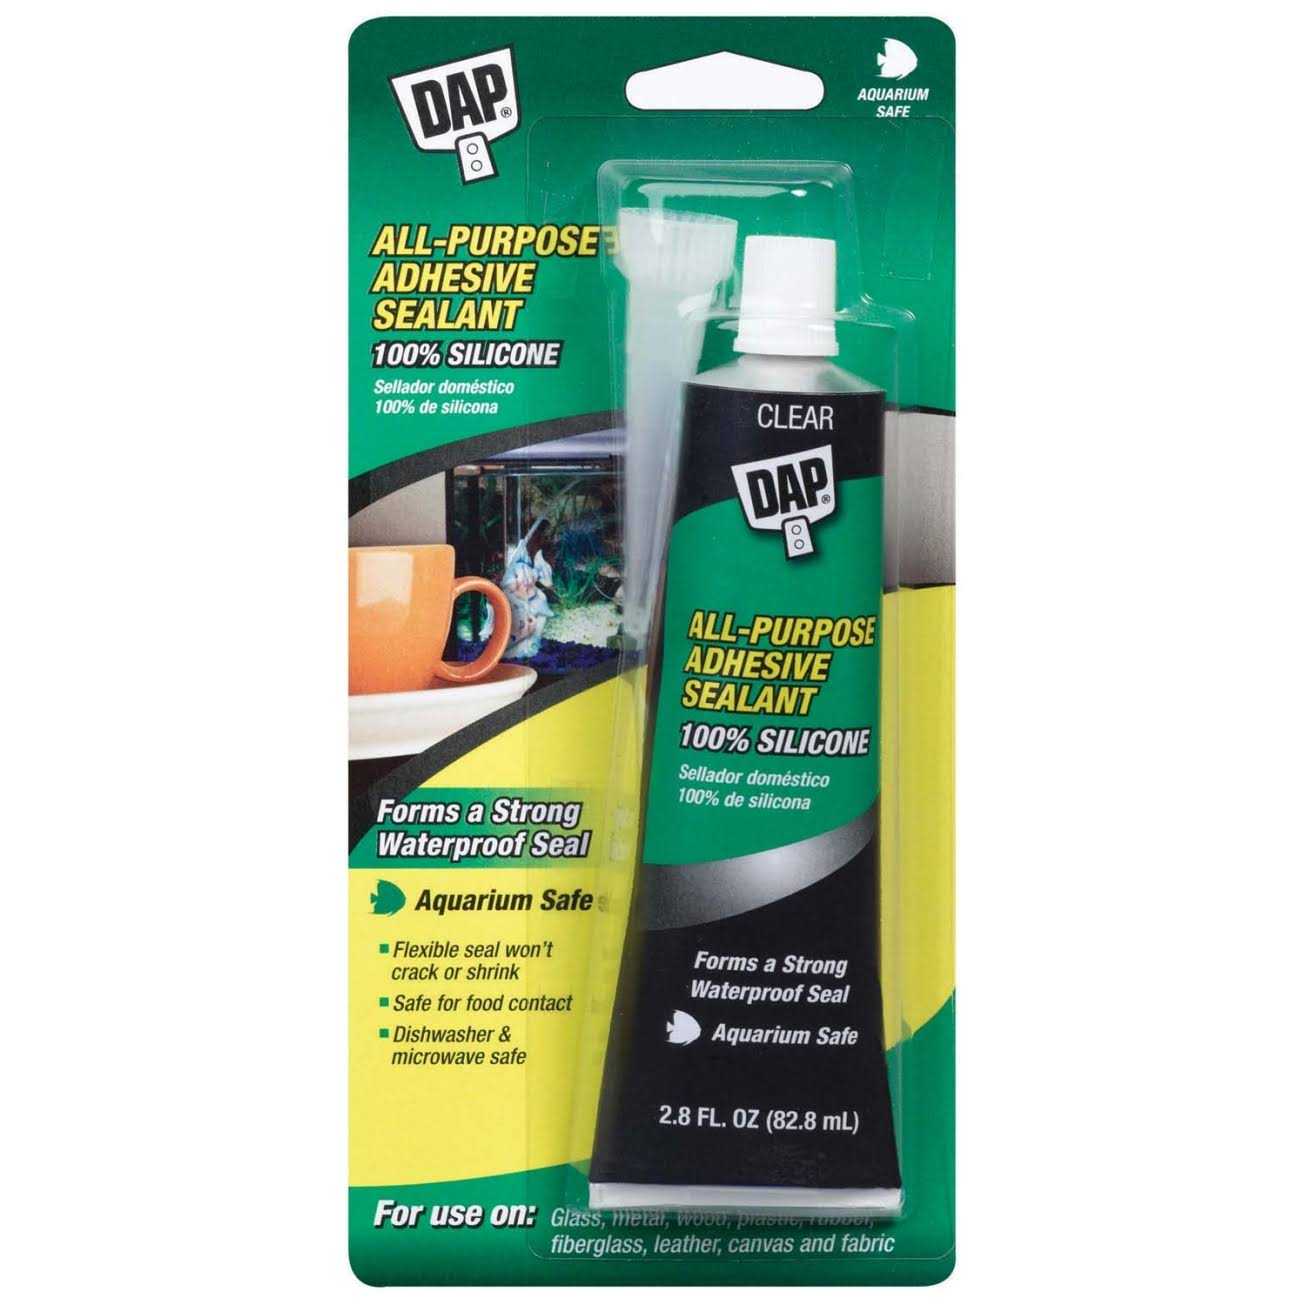 Dap Household Waterproof Adhesive Sealant - 2.8oz